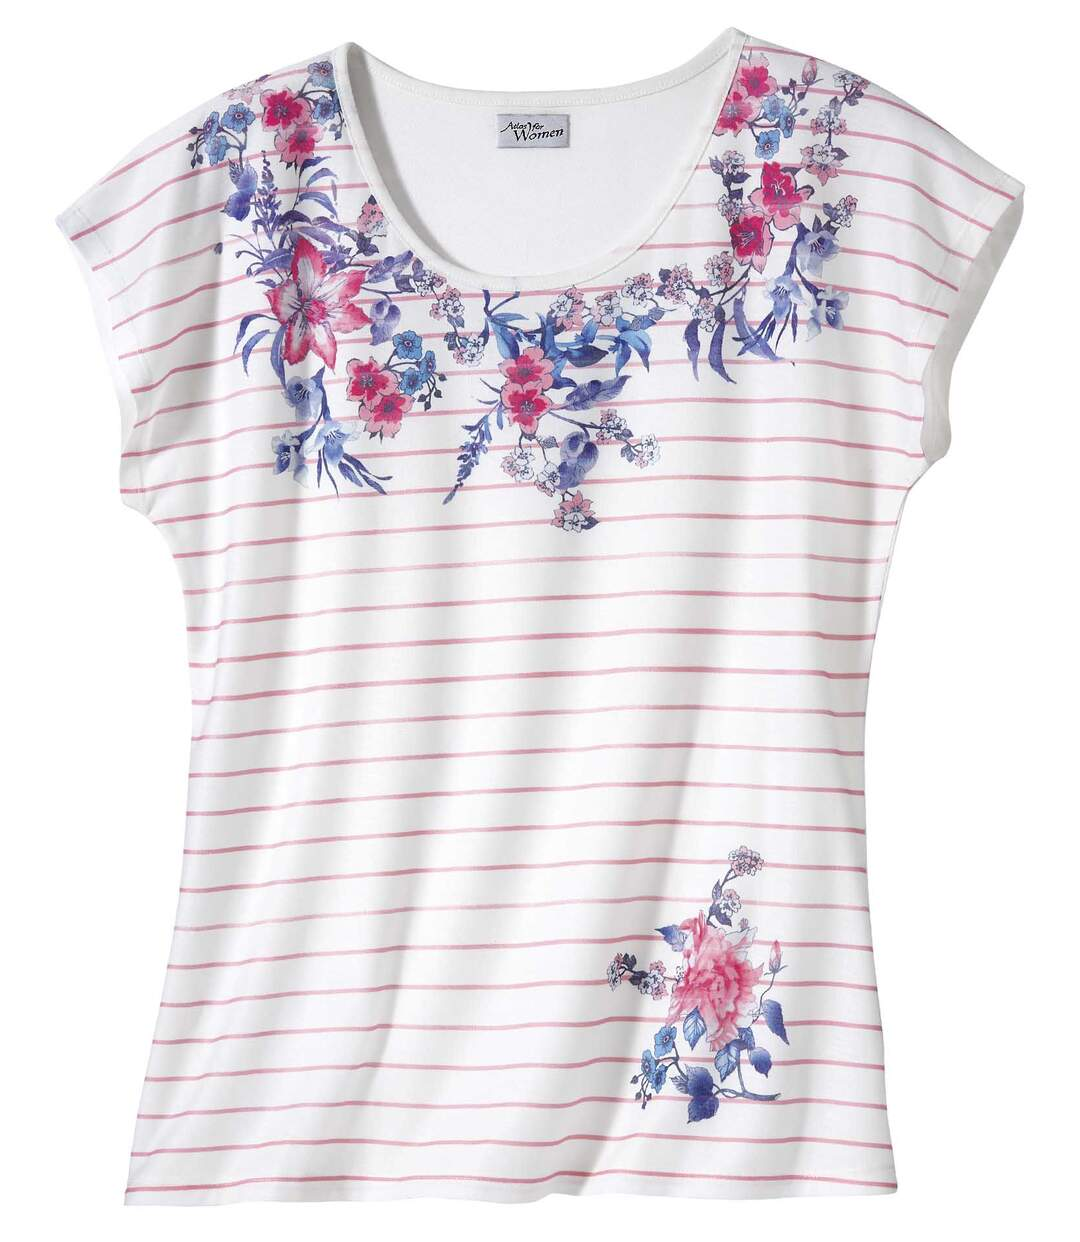 Women's Floral Striped Print T-Shirt